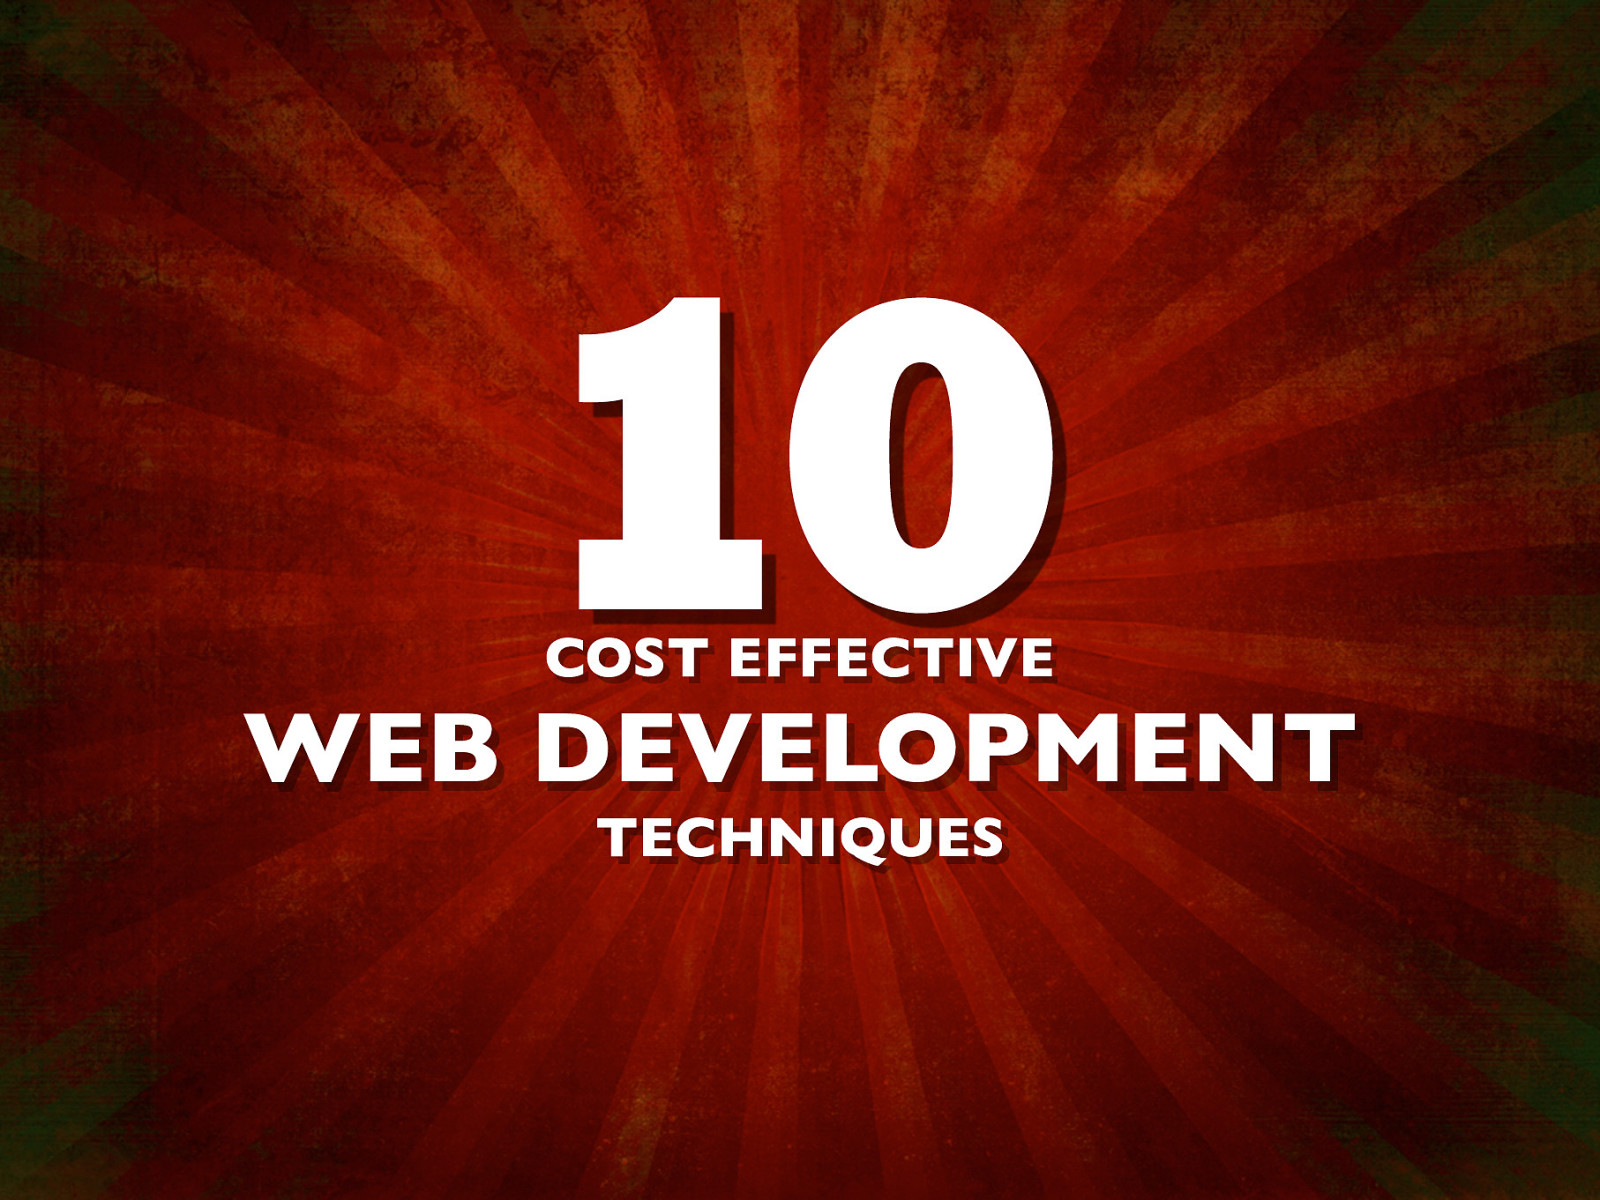 Cost Effective Web Development